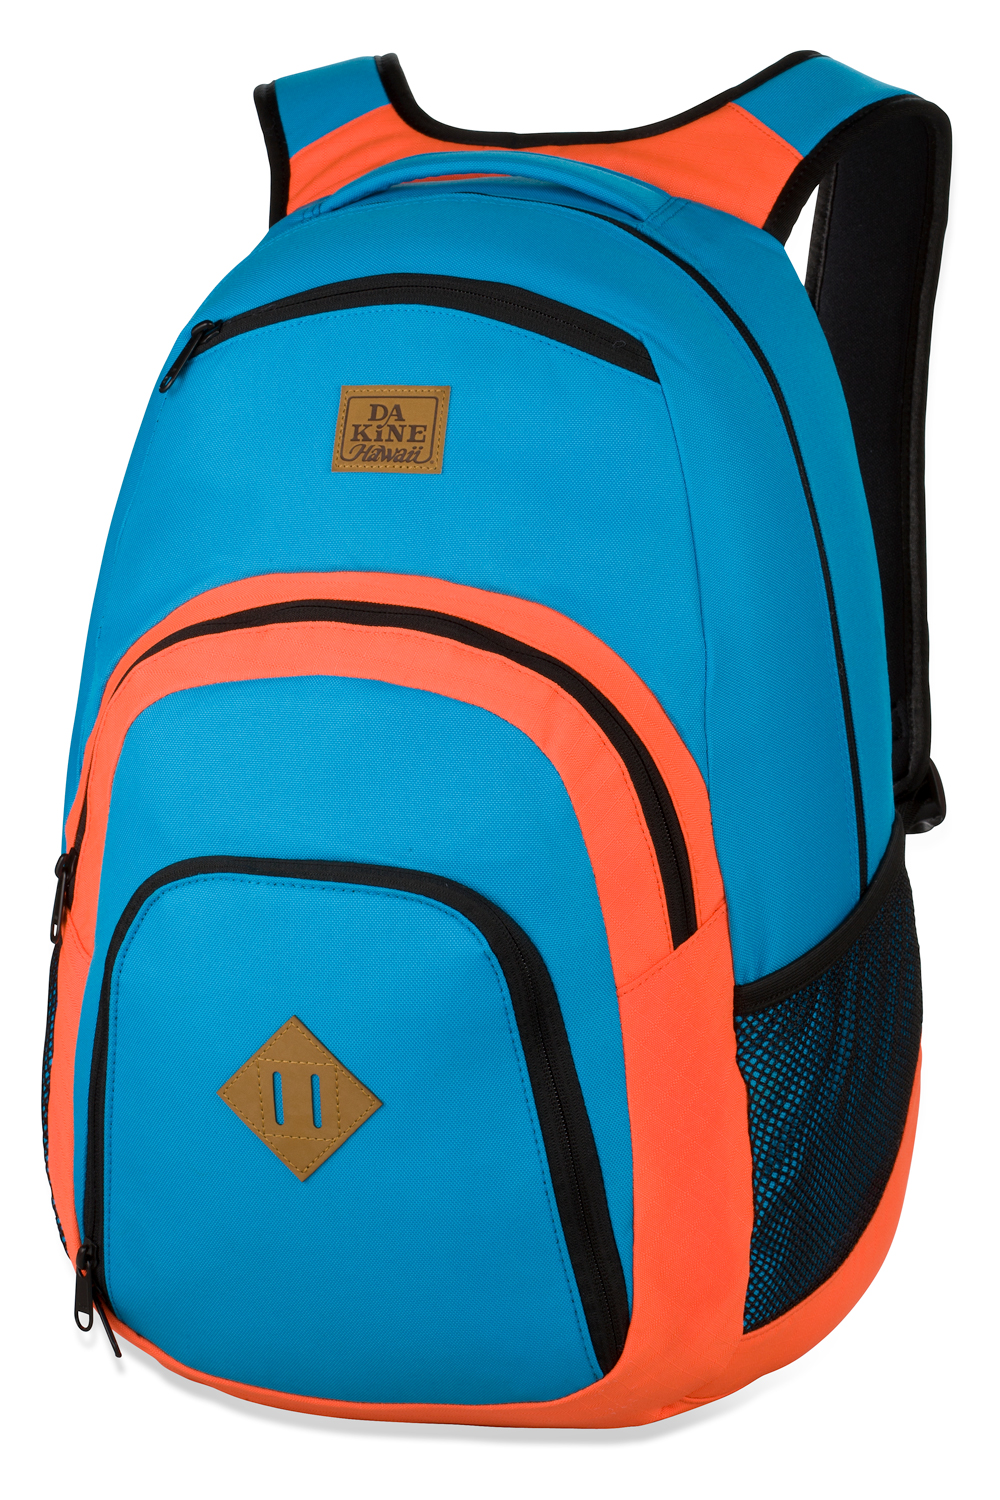 Dakine Campus Laptop Backpack - Crazy Backpacks